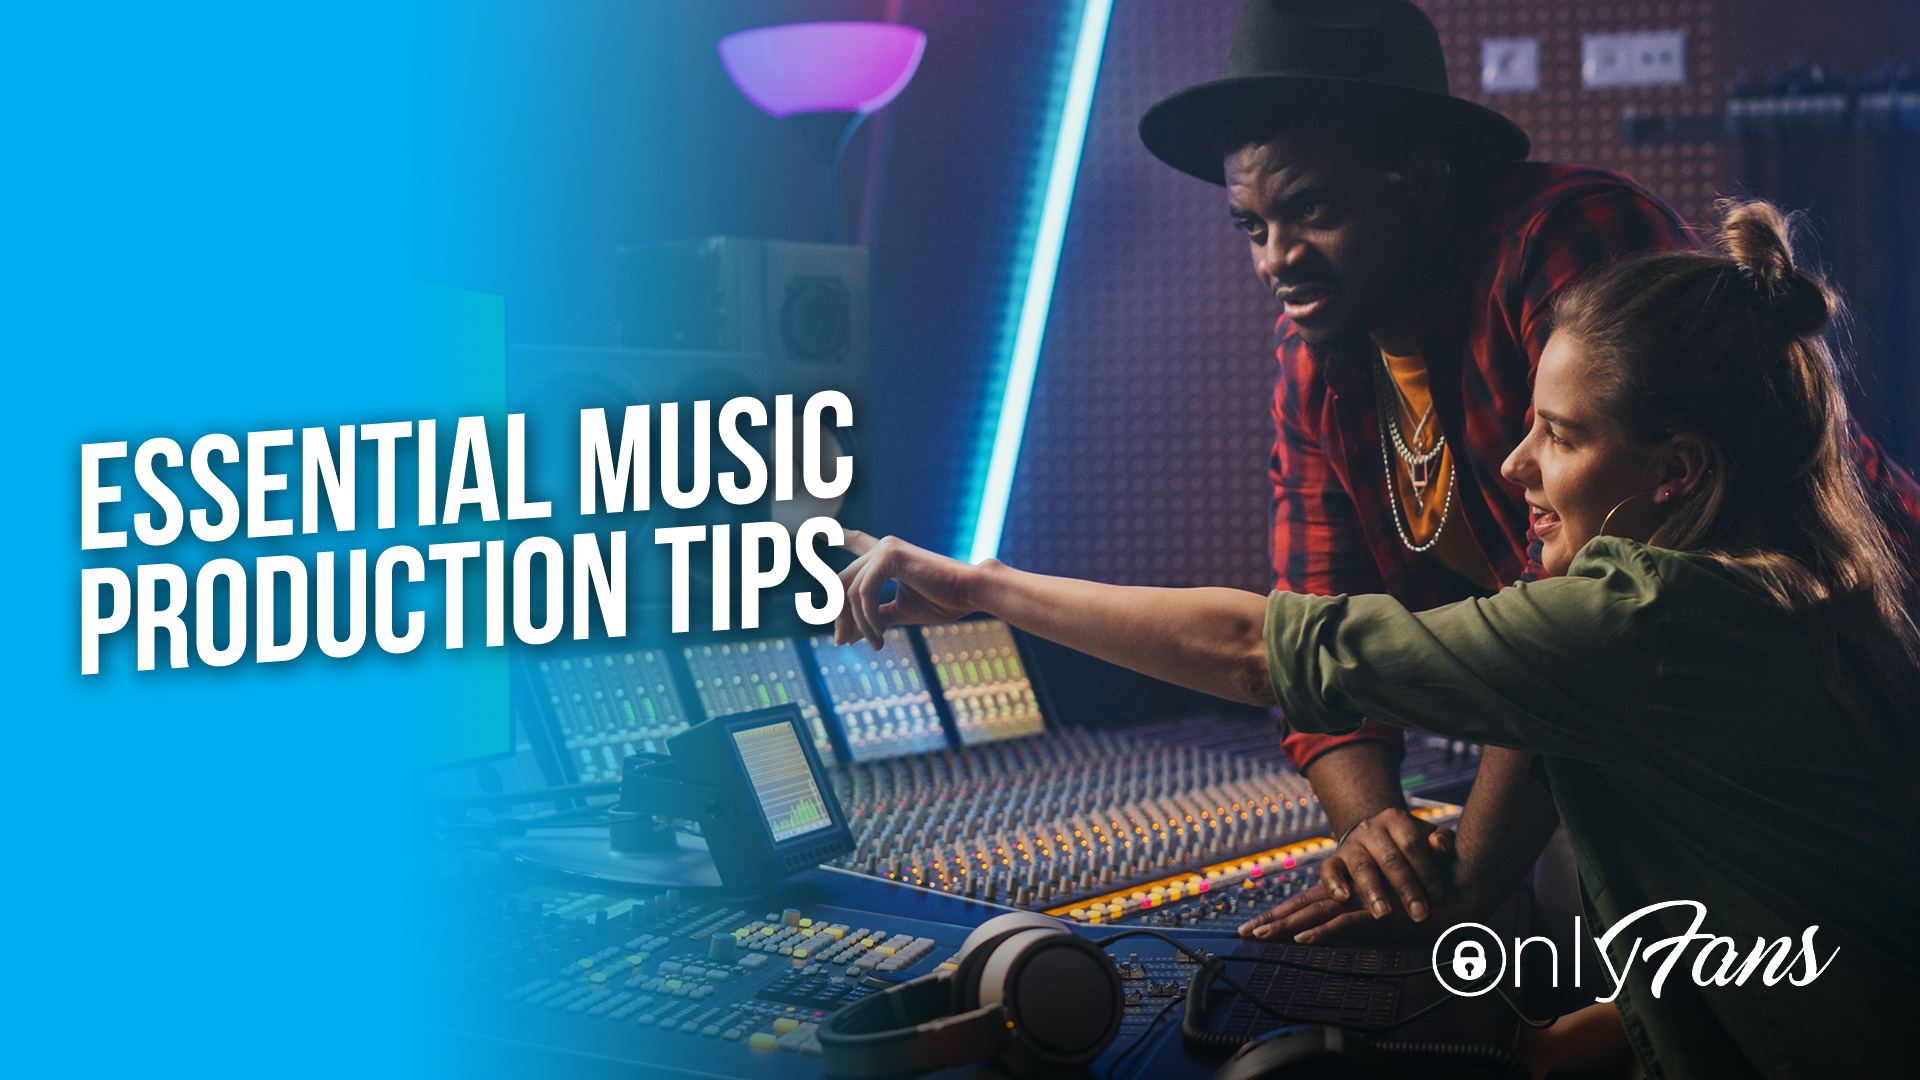 Essential music production tips